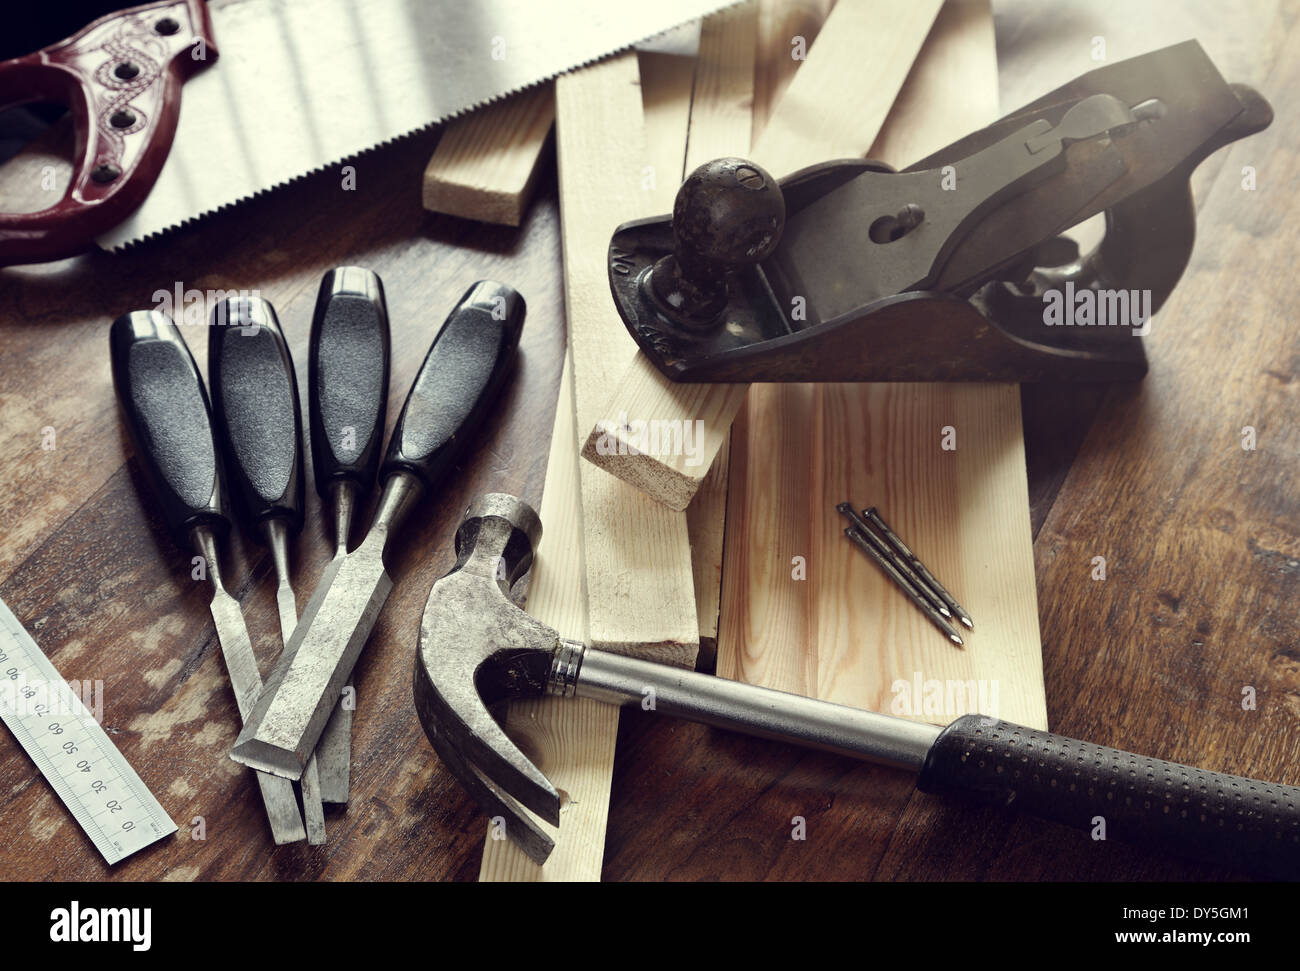 Woodwork tools - Stock Image